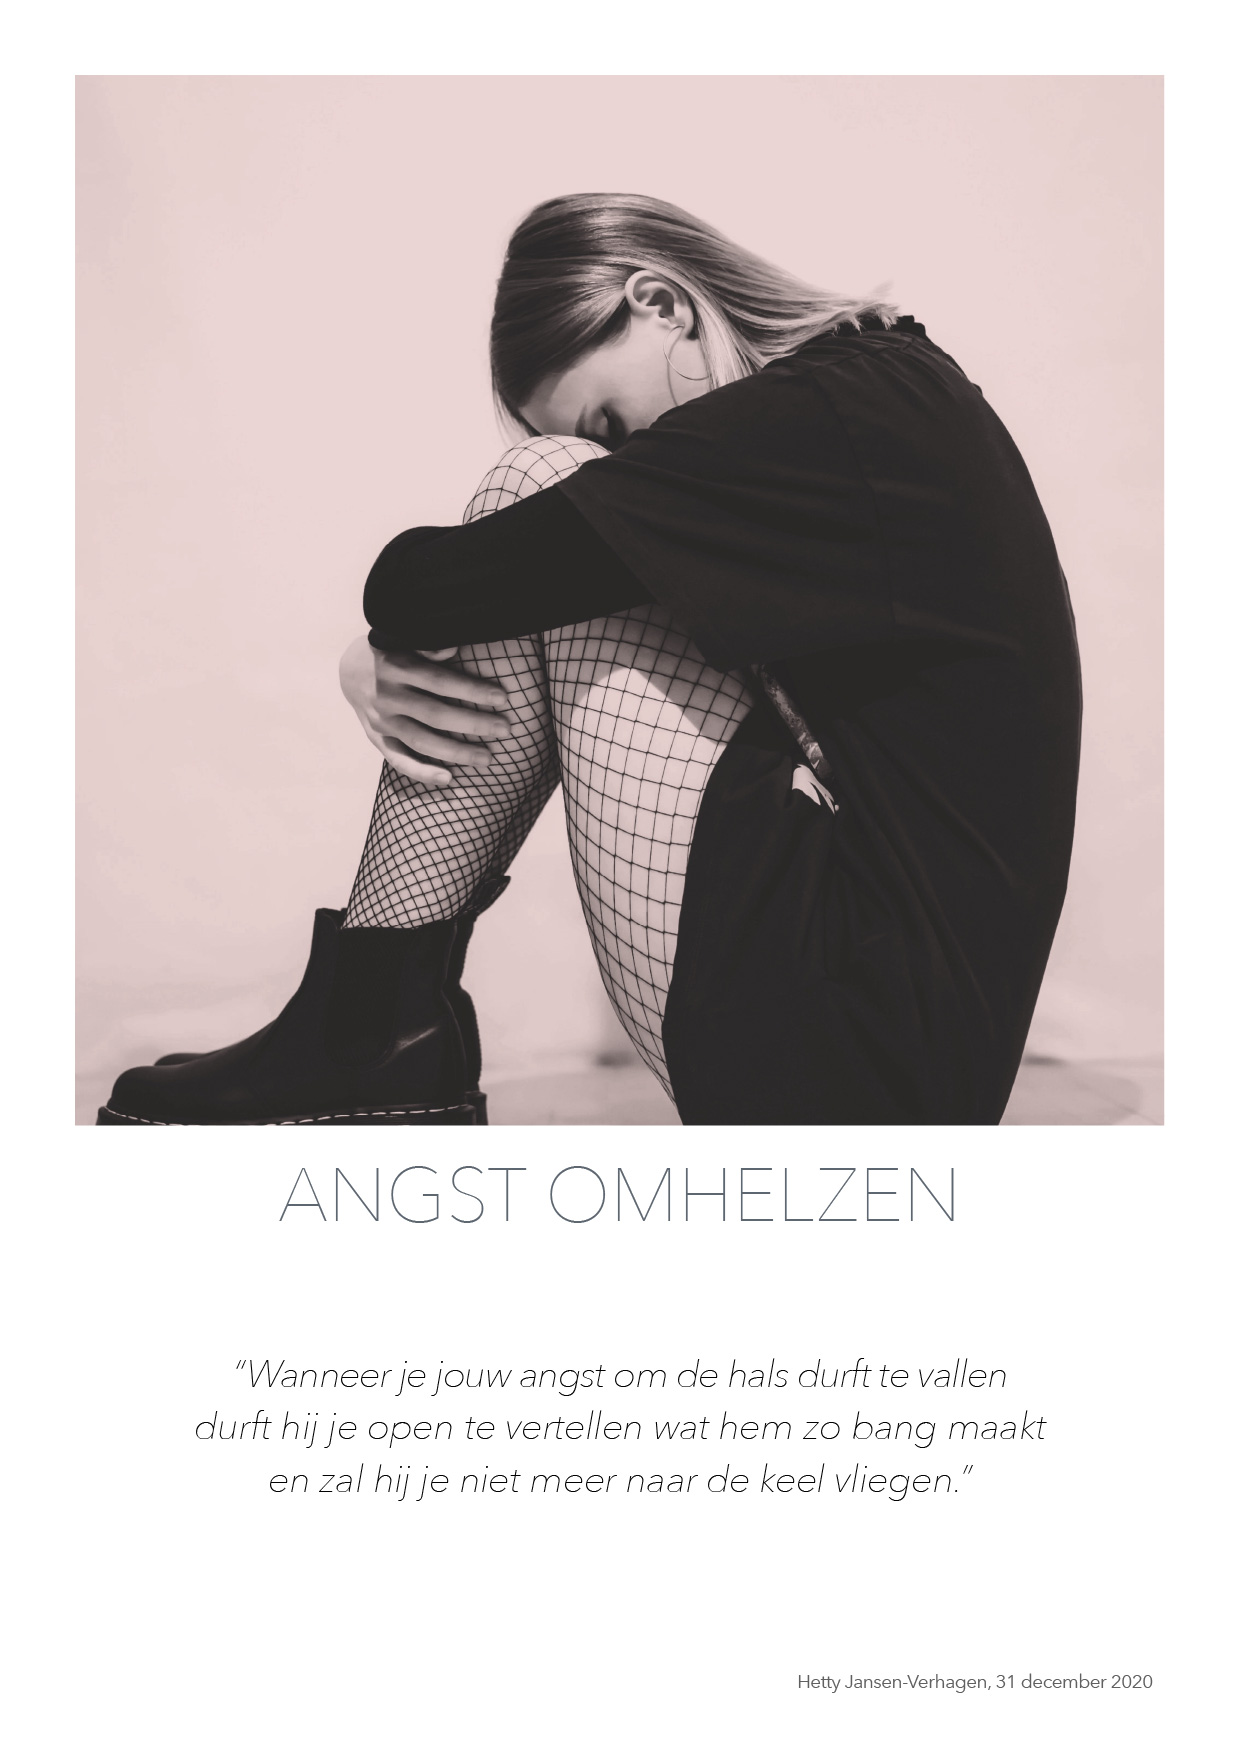 Angst omhelzen - quote HJTC